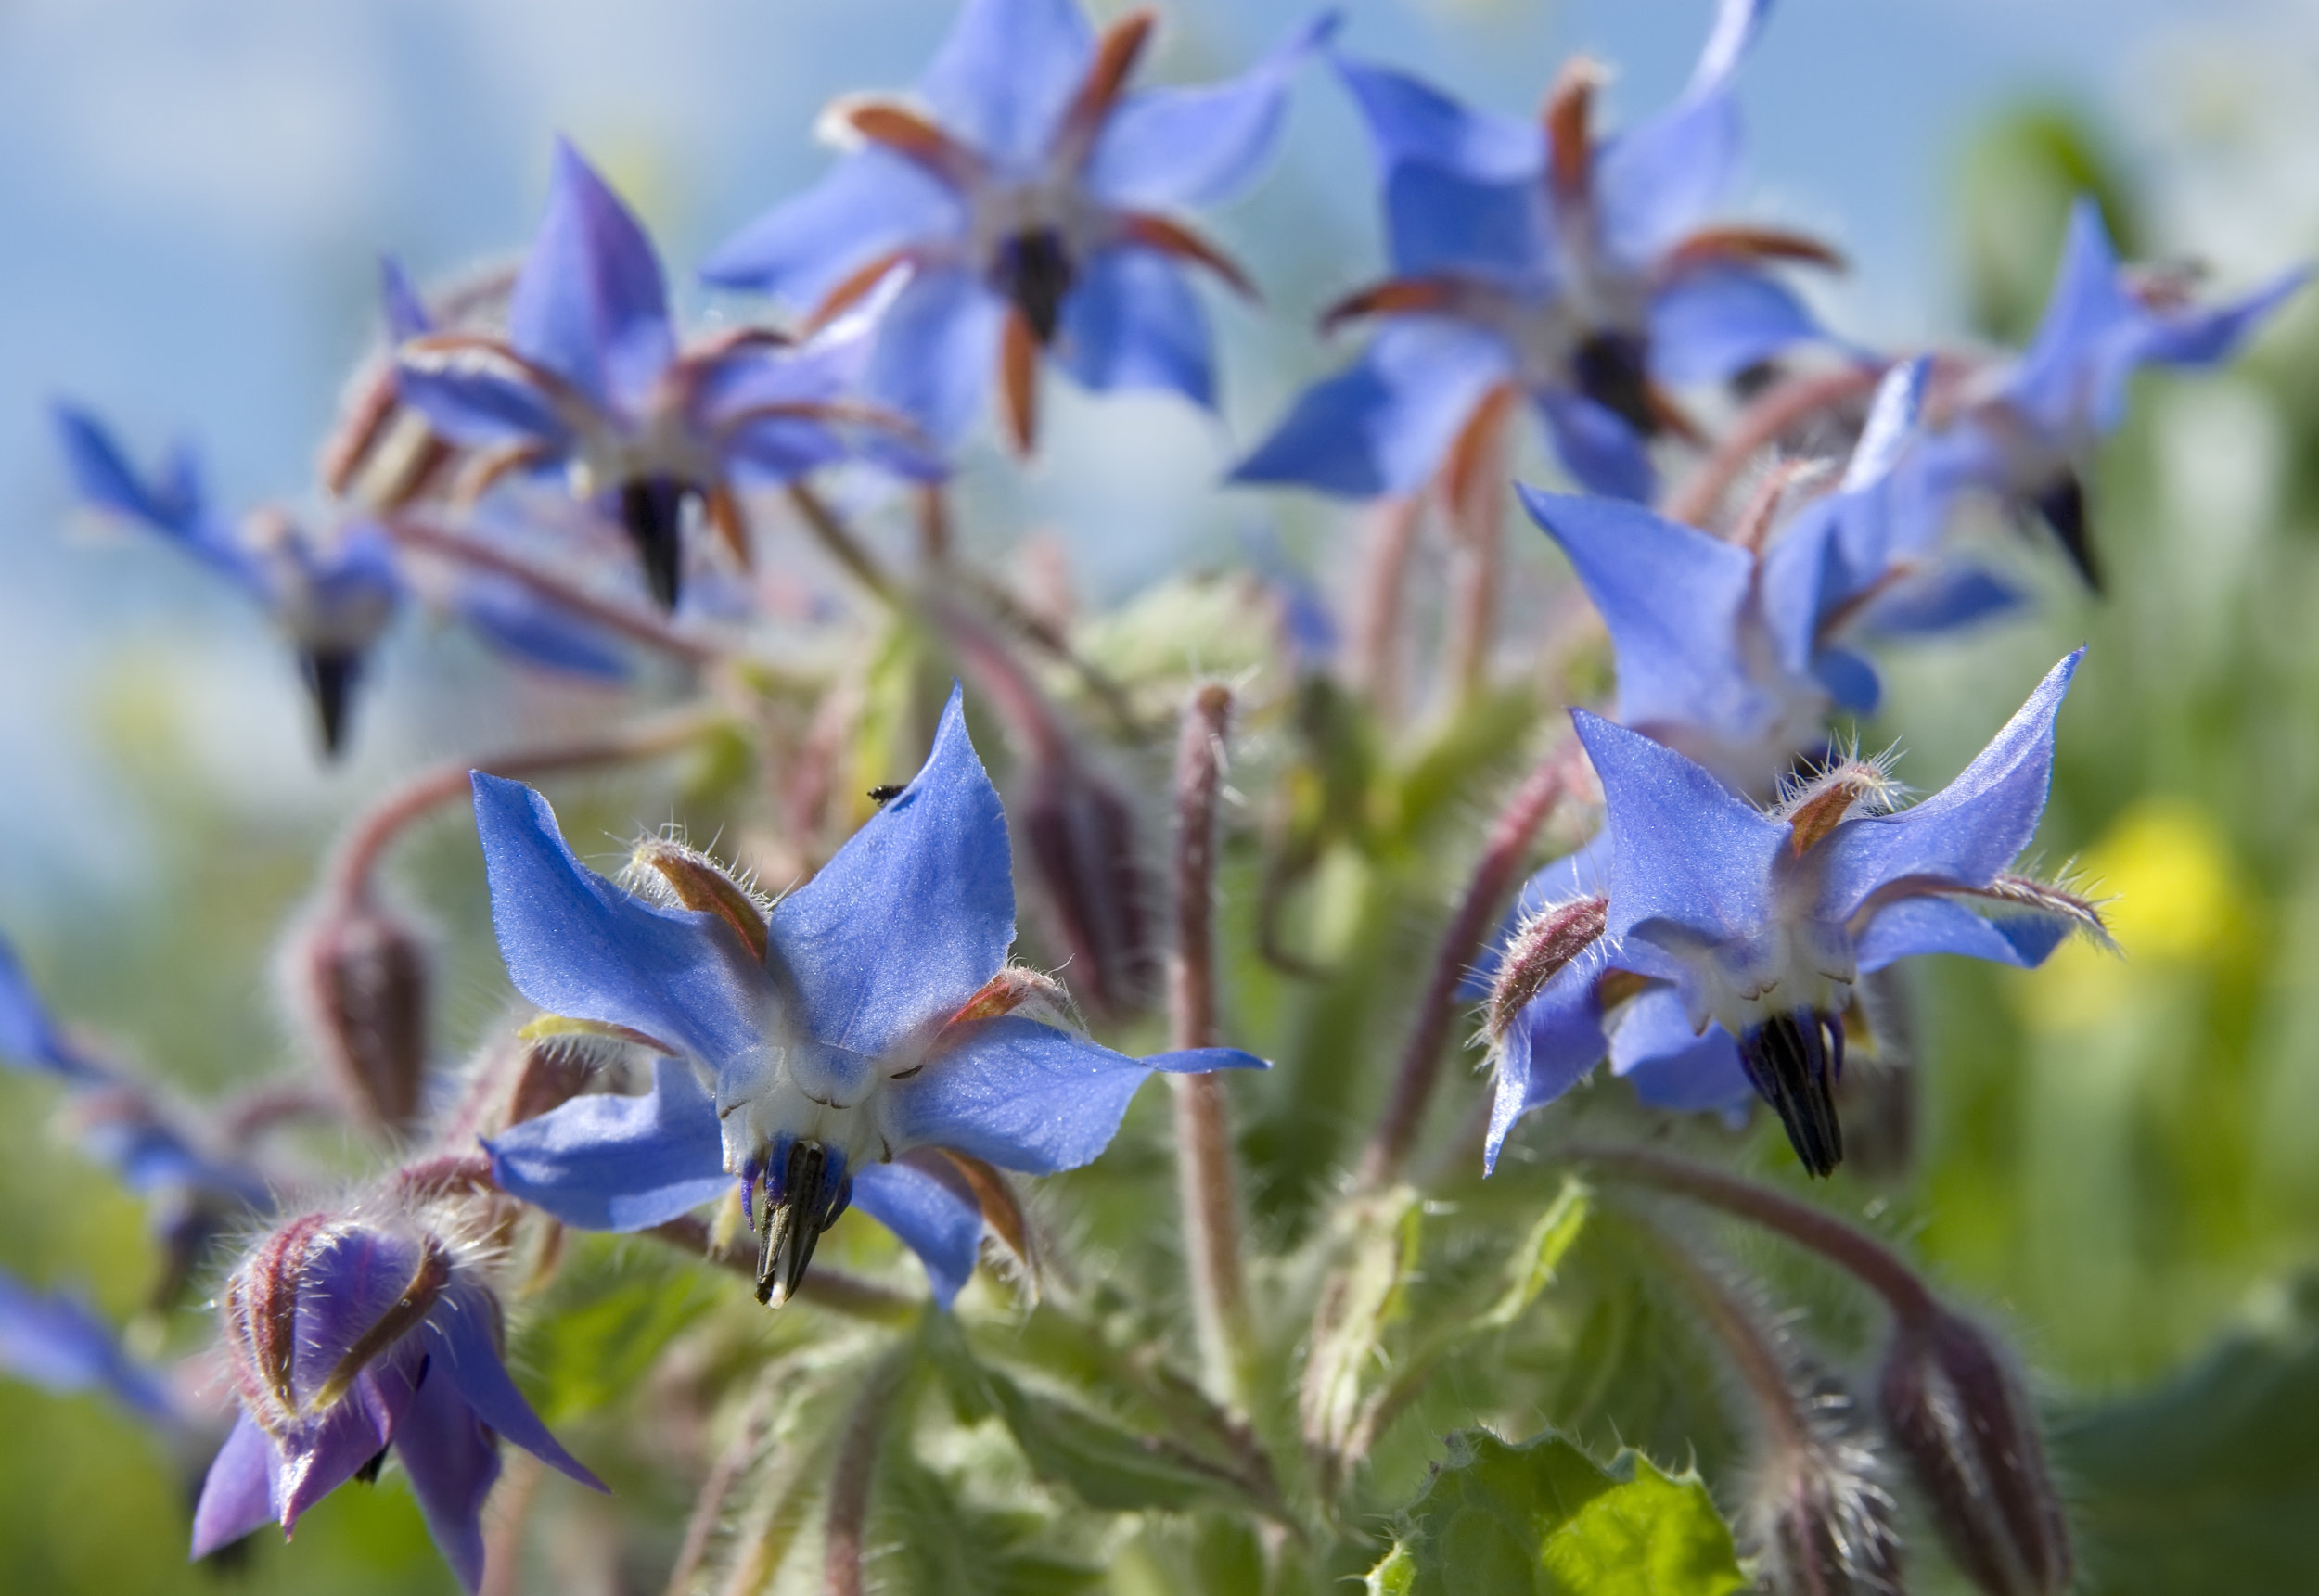 Borage Oil - rich in omega 6 aiding in improving damaged, irritated skin. This oil also contains ferulic acid which is a more effective anti-oxidant than Vitamin E. This helps the oil to soothe and moisturize skin; repair light and weather induced skin damage; reduce itching and inflammation; and may reduce skin aging.